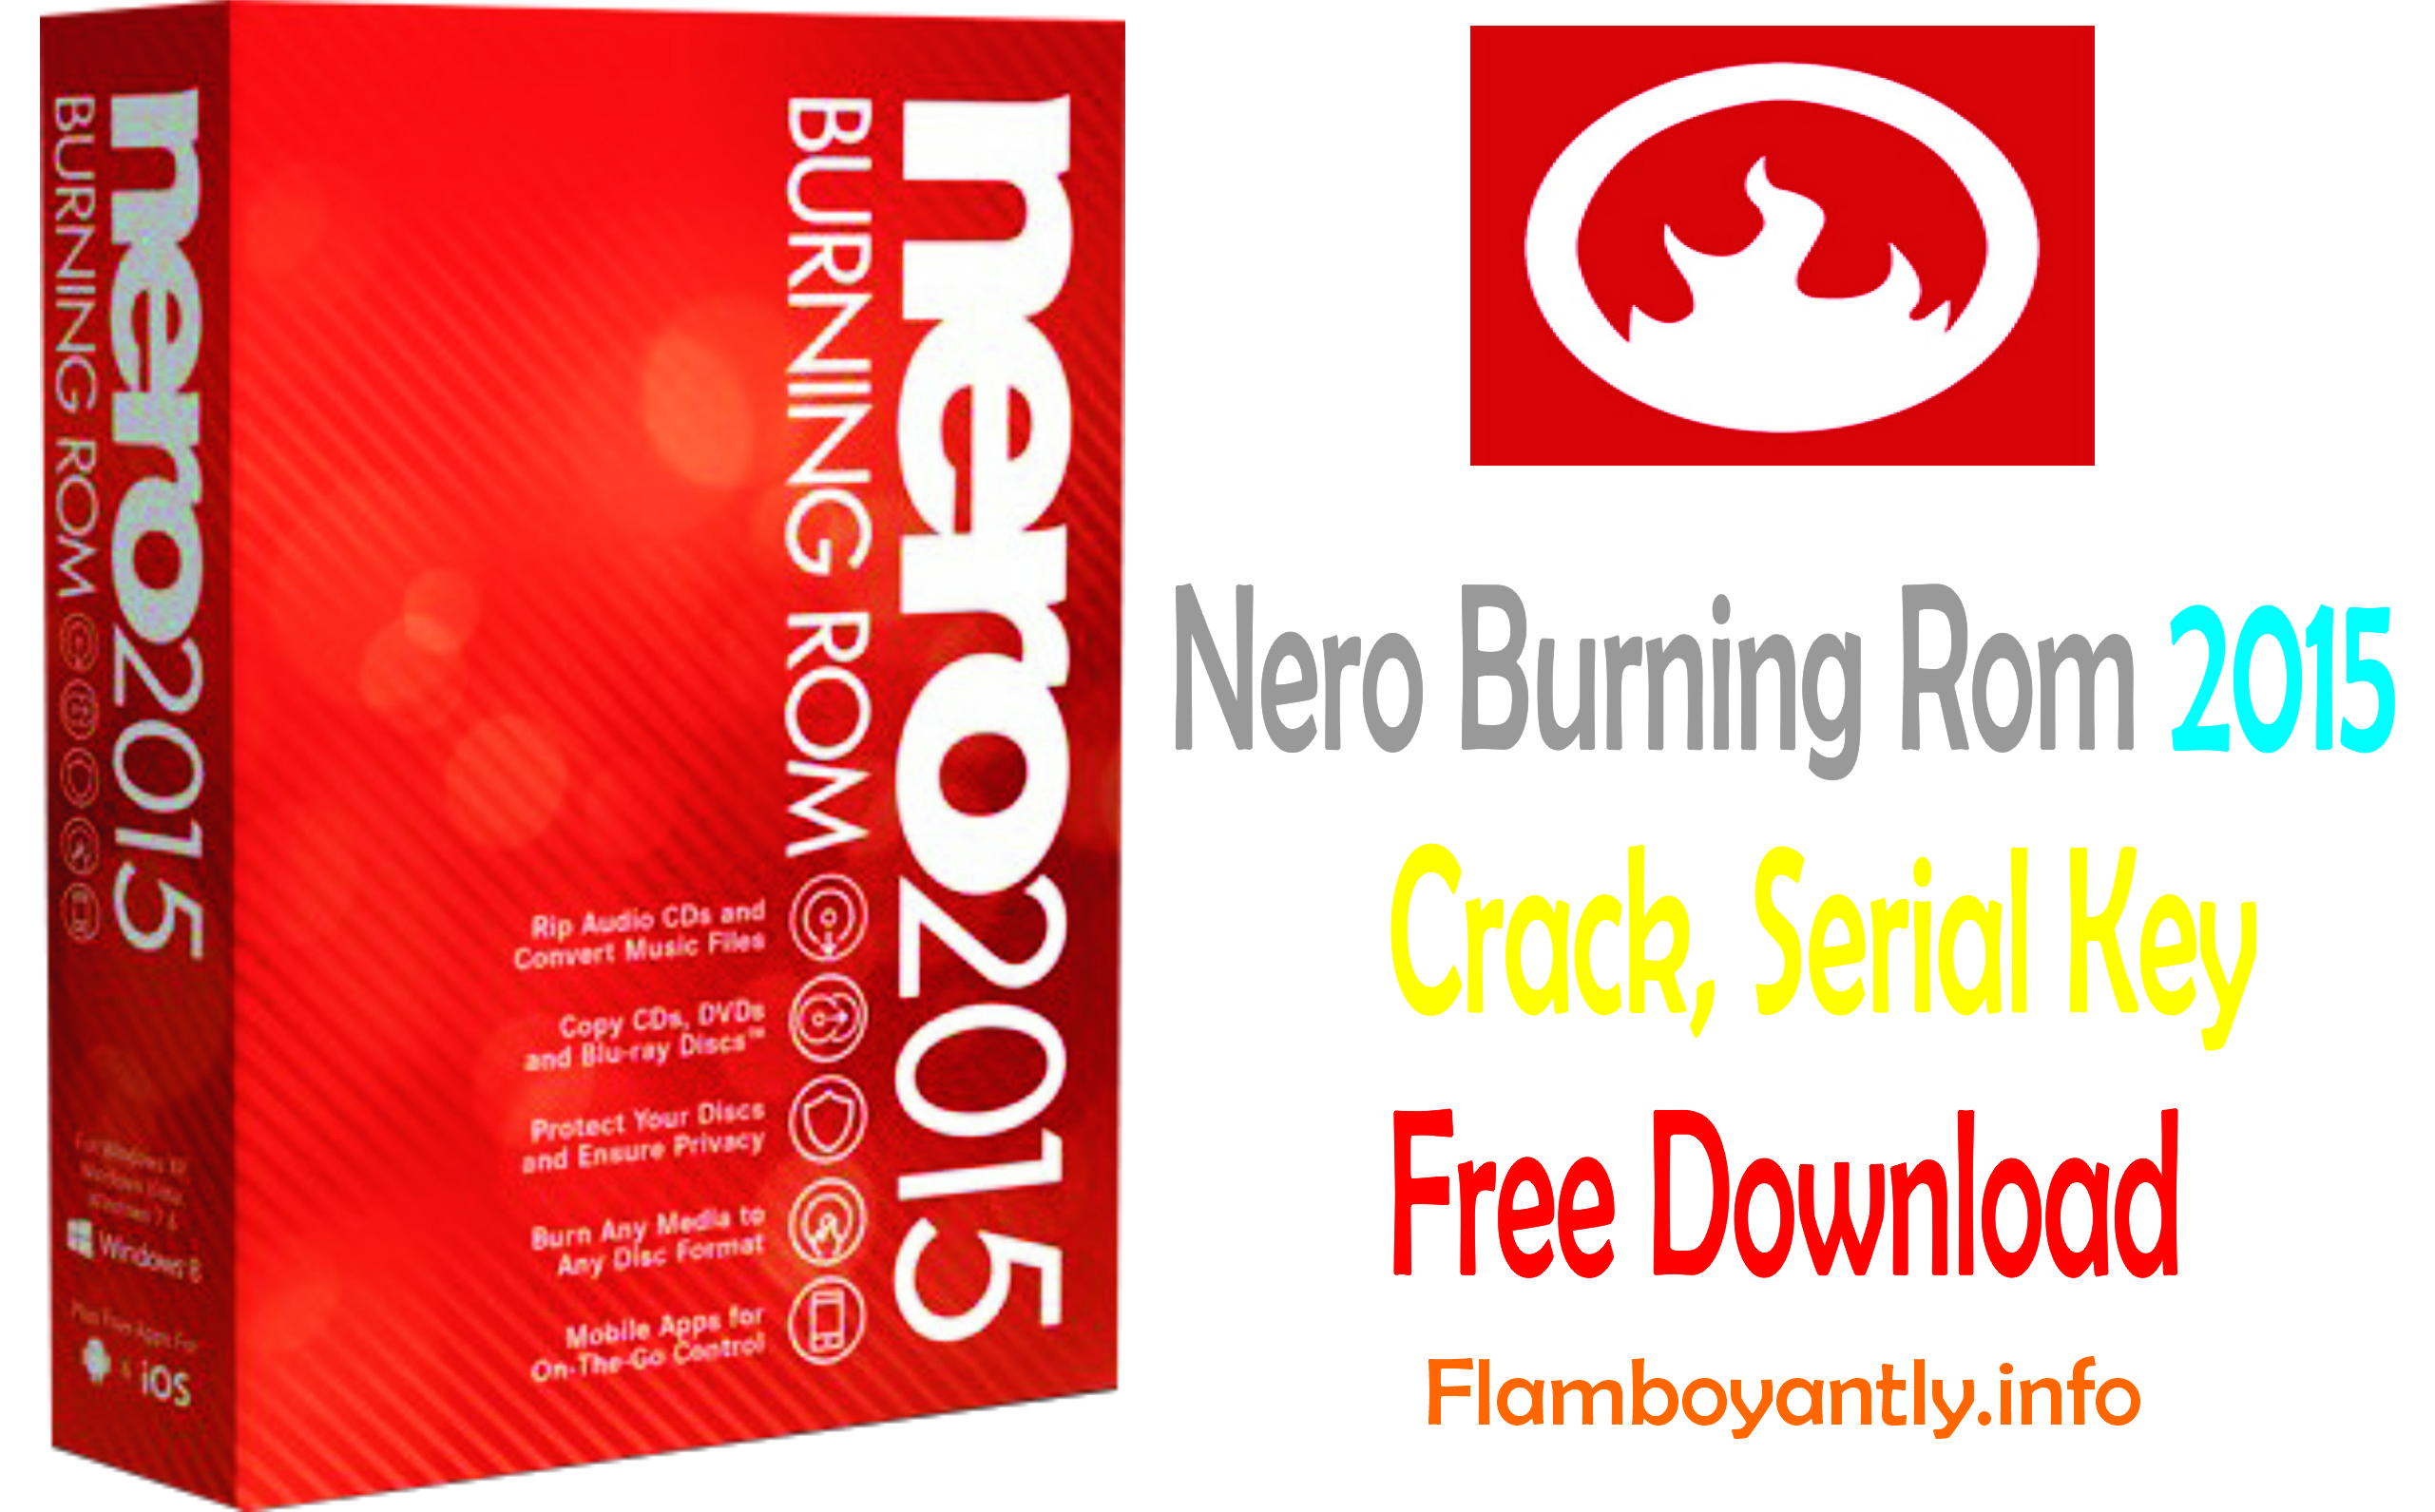 Nero Burning Rom 2015 Crack, Serial Key Free Download